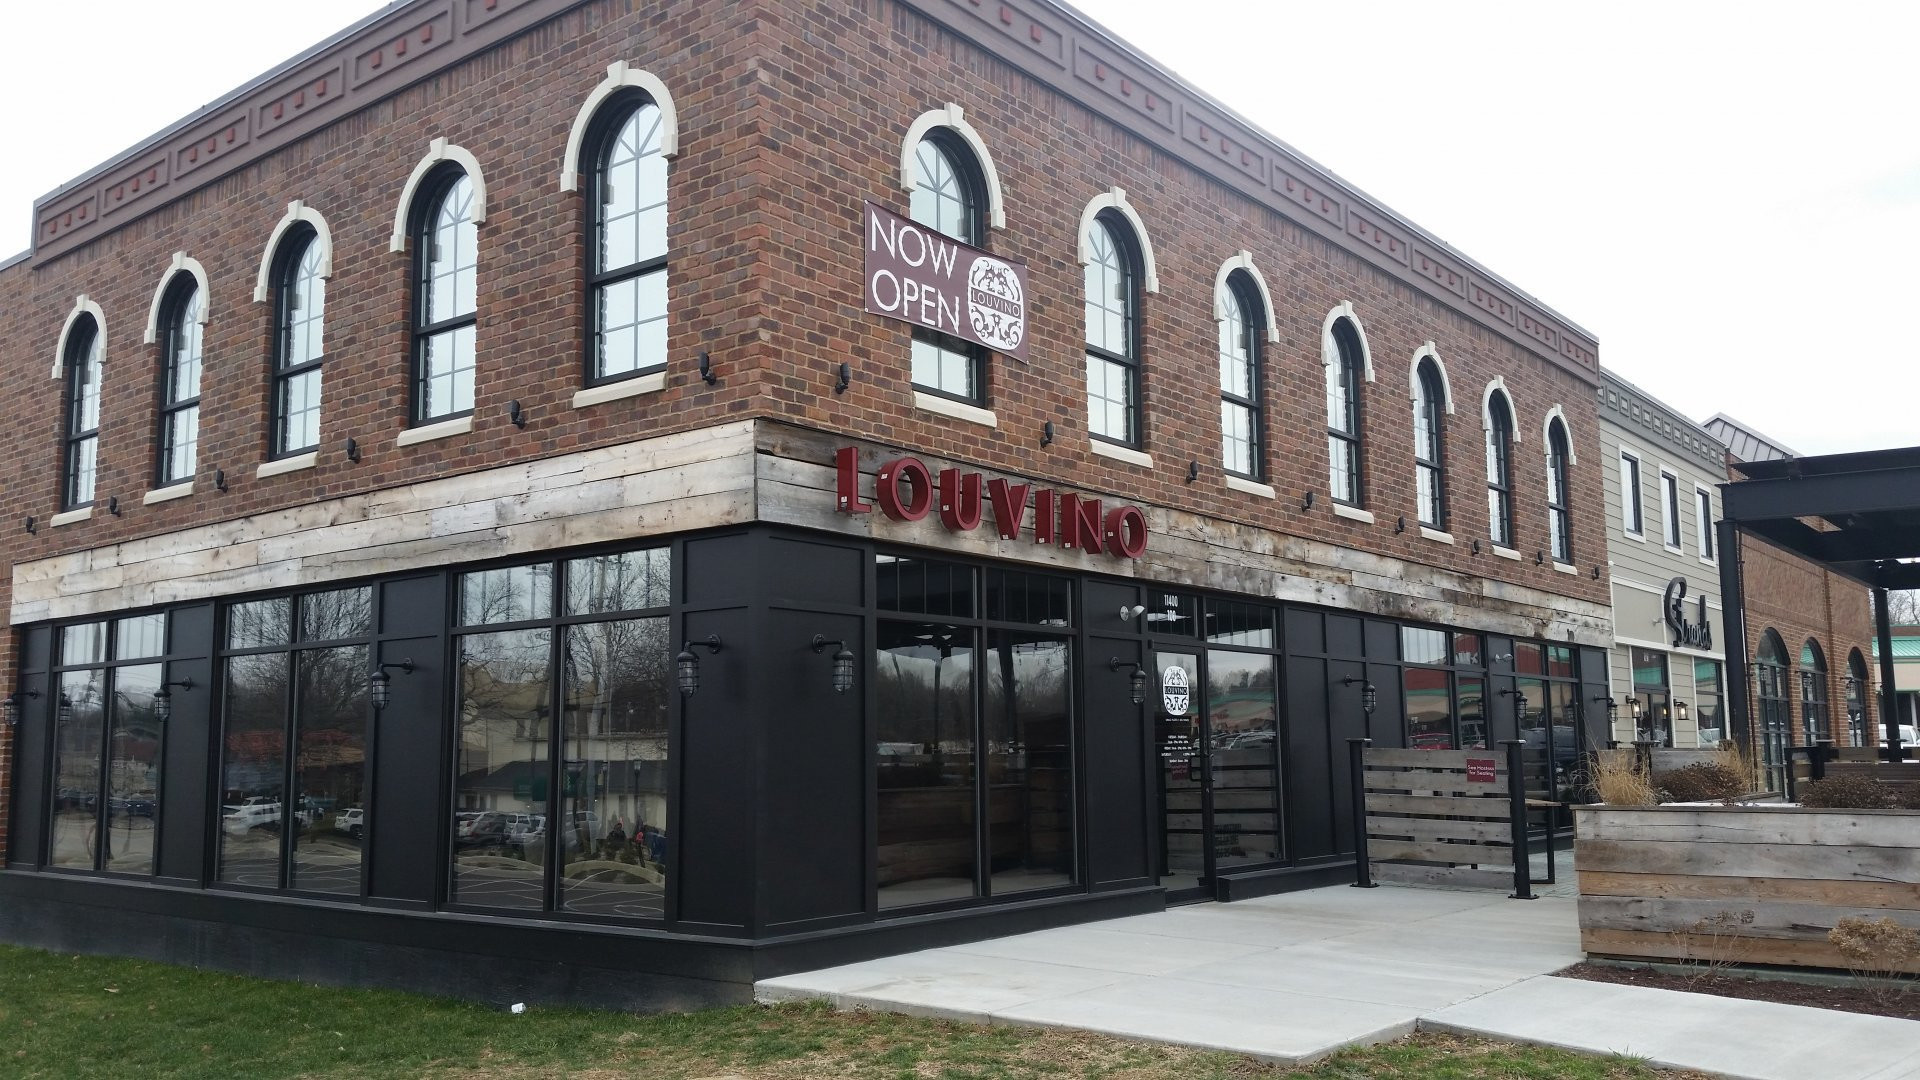 Louvino's Retail Center